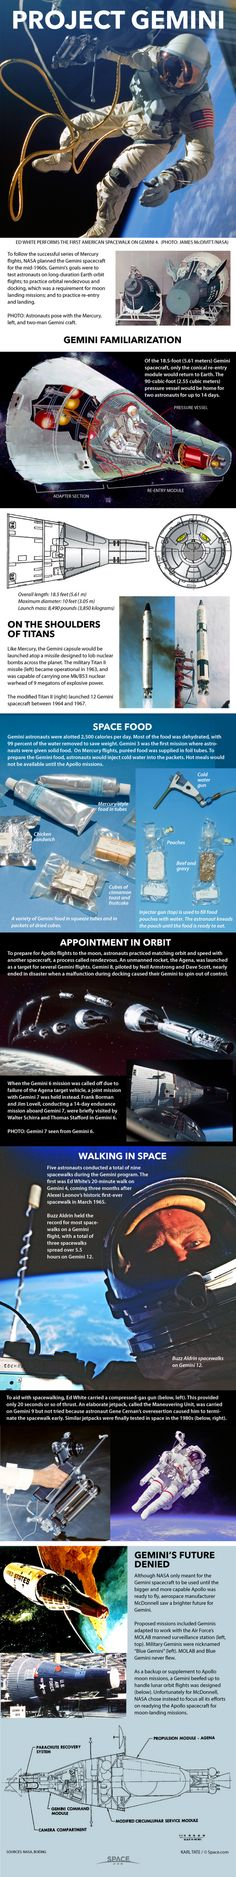 How NASA's Gemini Spacecraft Worked. Source: Space.com